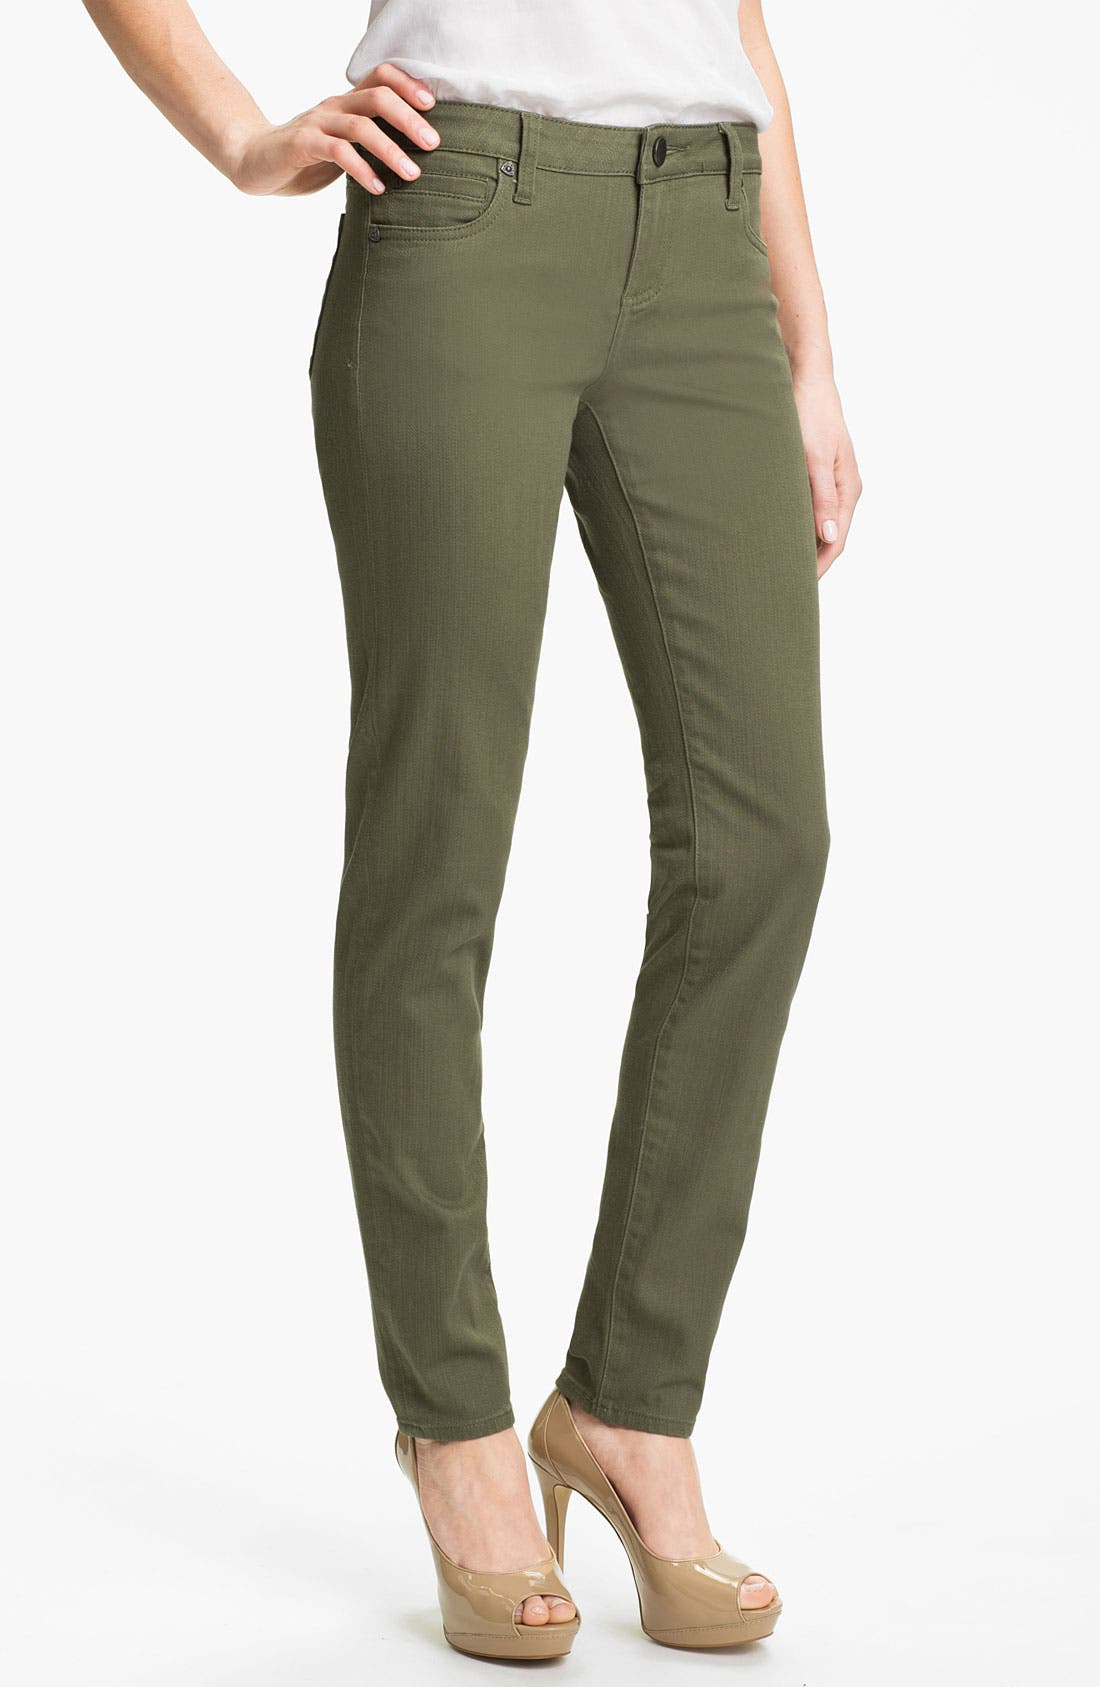 Alternate Image 1 Selected - KUT from the Kloth 'Diana' Skinny Jeans (Pacific Olive)